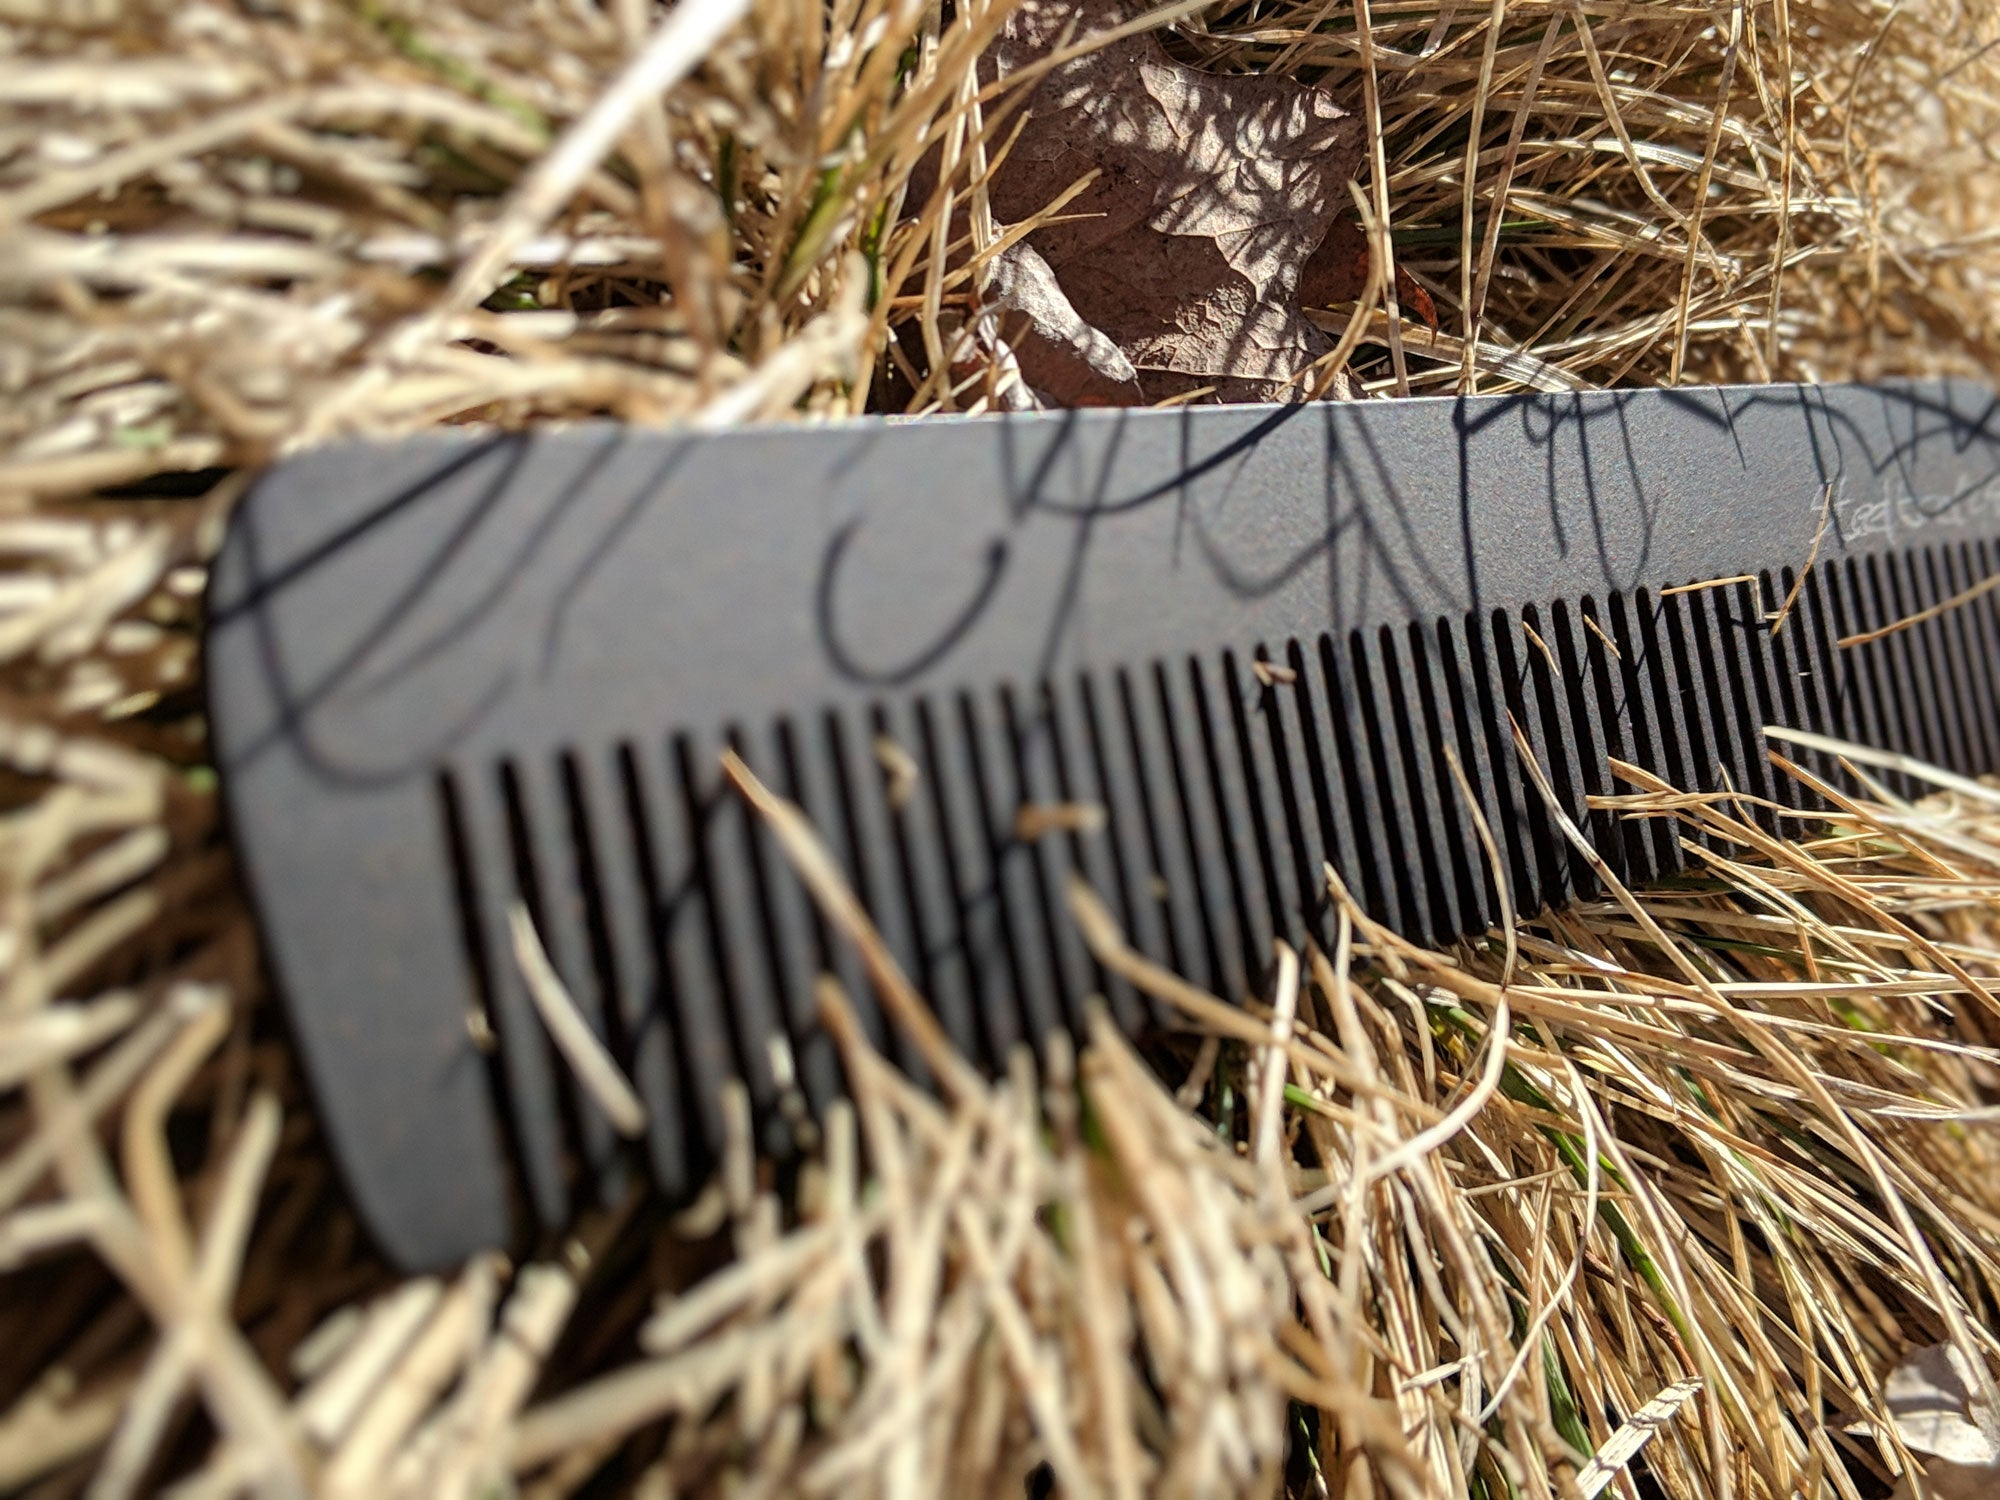 A steeltooth new standard comb with a deep red/brown finish on it in some dead grass.